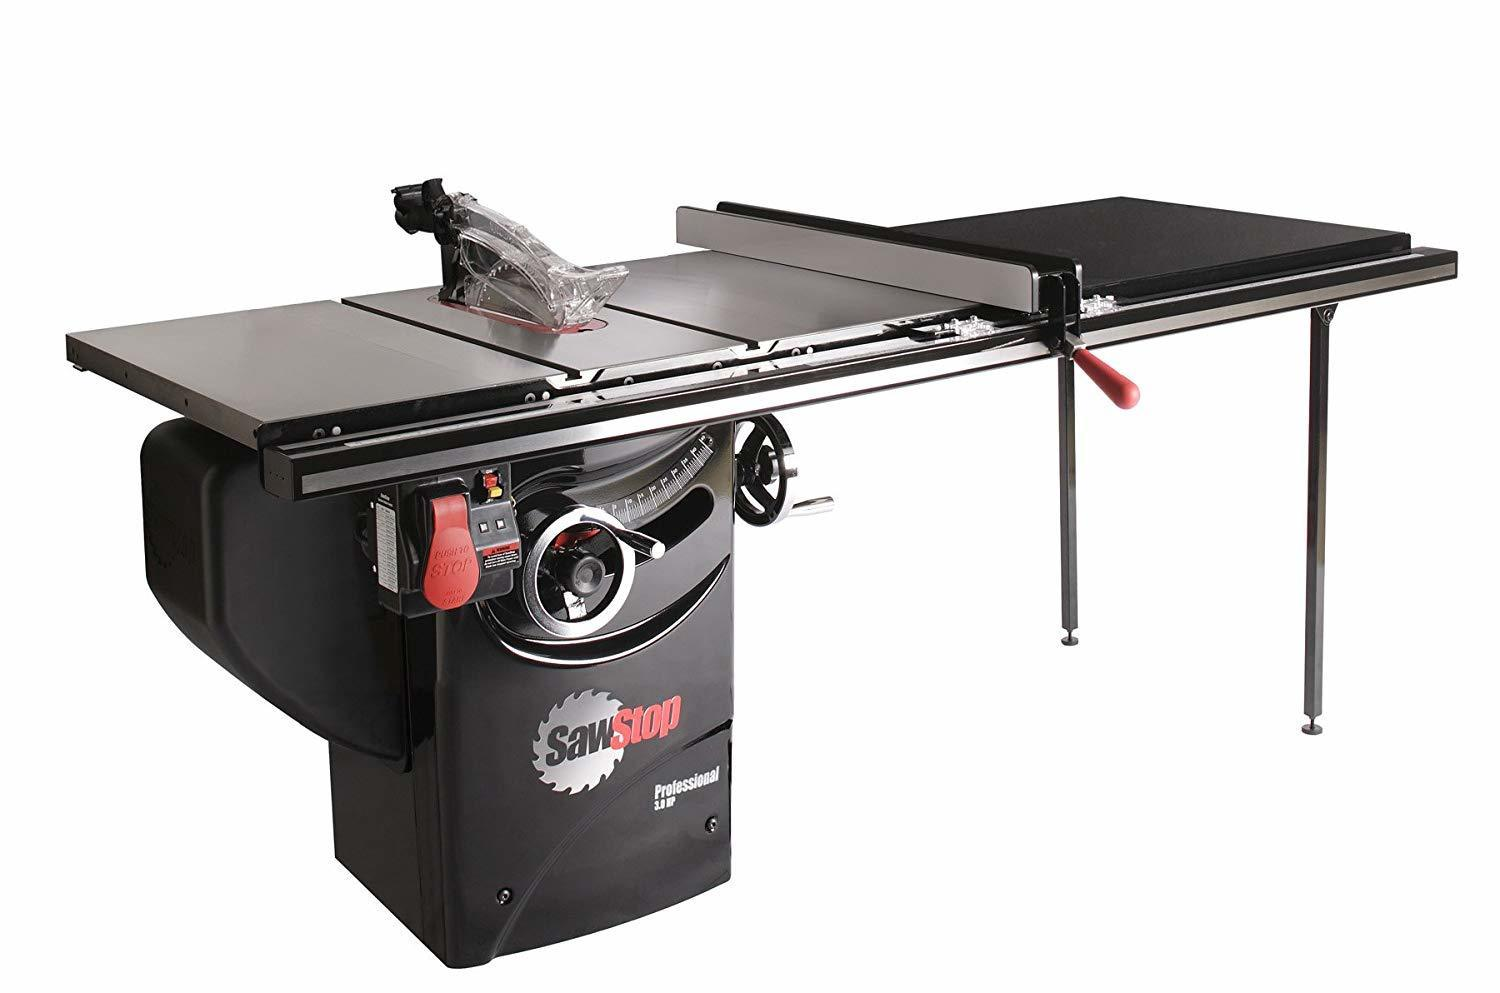 SawStop PCS31230-TGP252 3-HP Professional Cabinet Table Saw